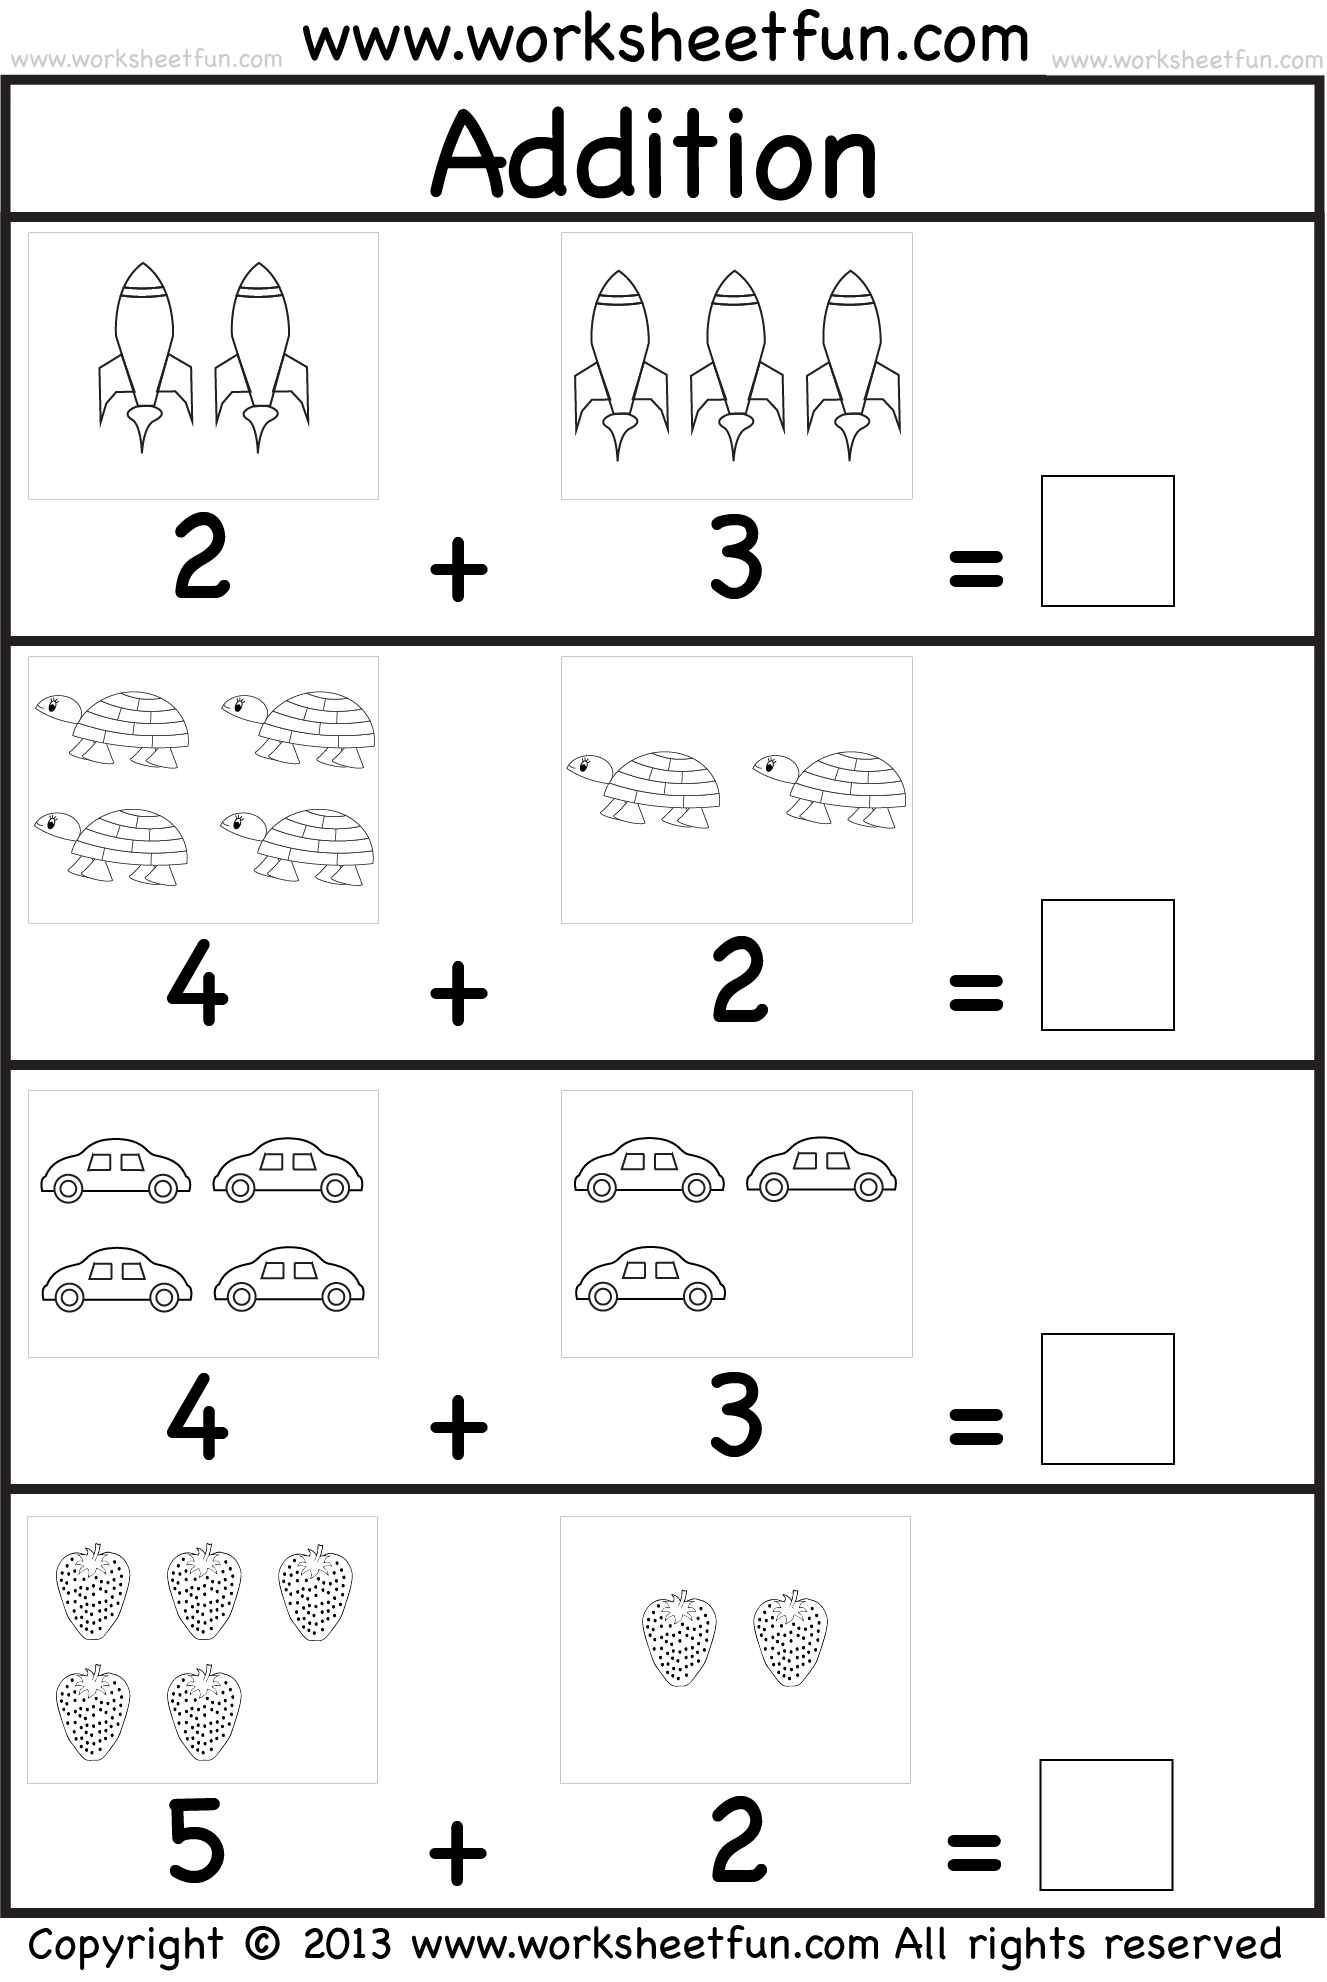 worksheet Free Nursery Worksheets addition worksheet this site has great free worksheets for everything from abcs to math